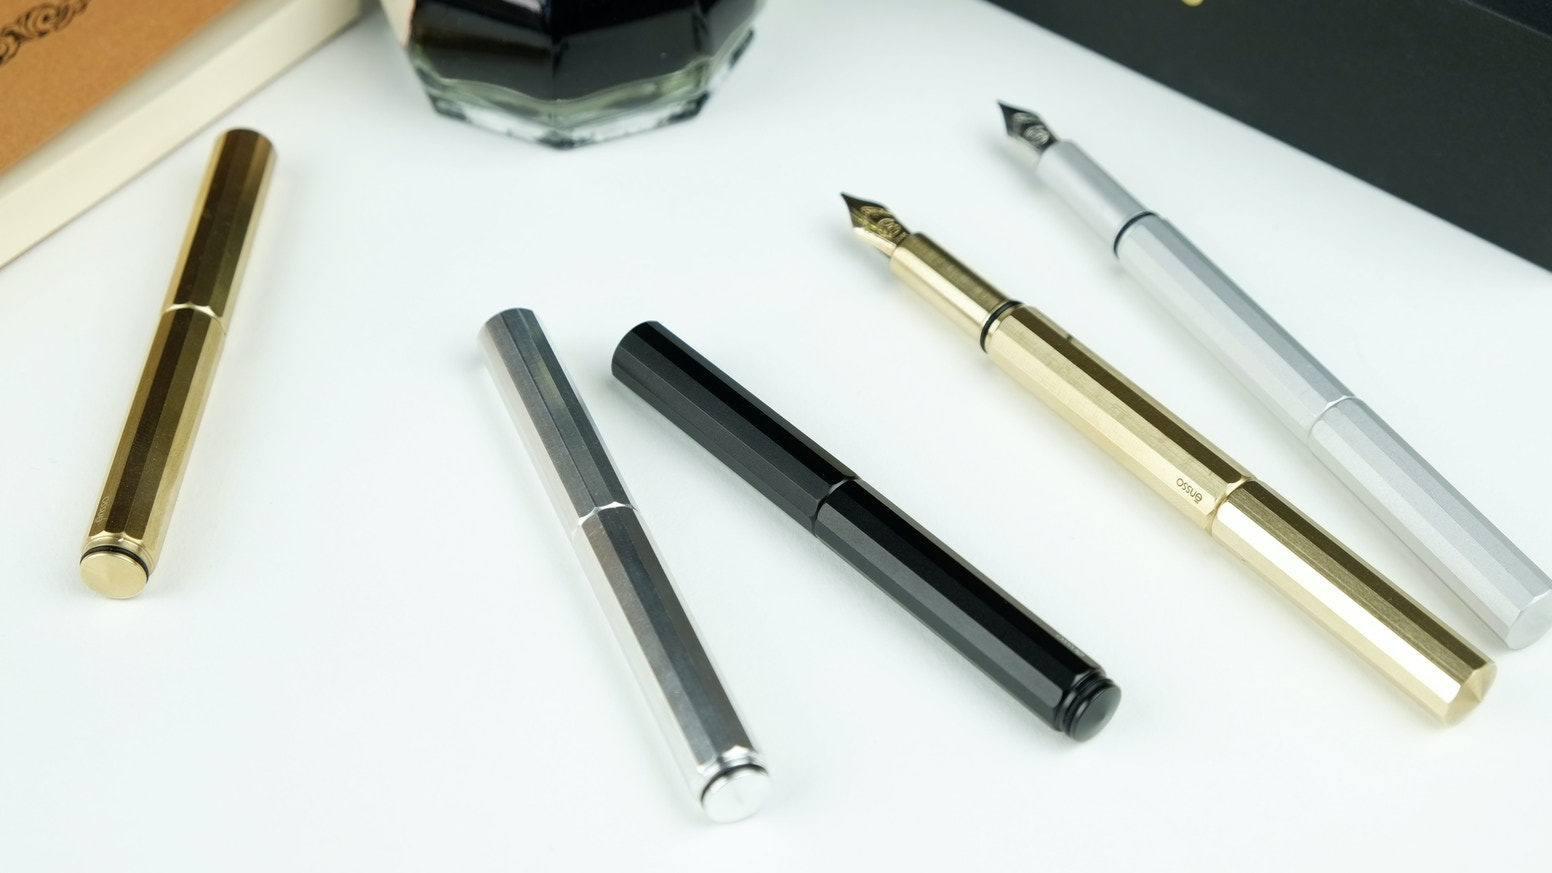 XS is a super compact minimalist fountain pen ideal for everyday carry that extends into a regular size pen. Solid Aluminum & Brass.